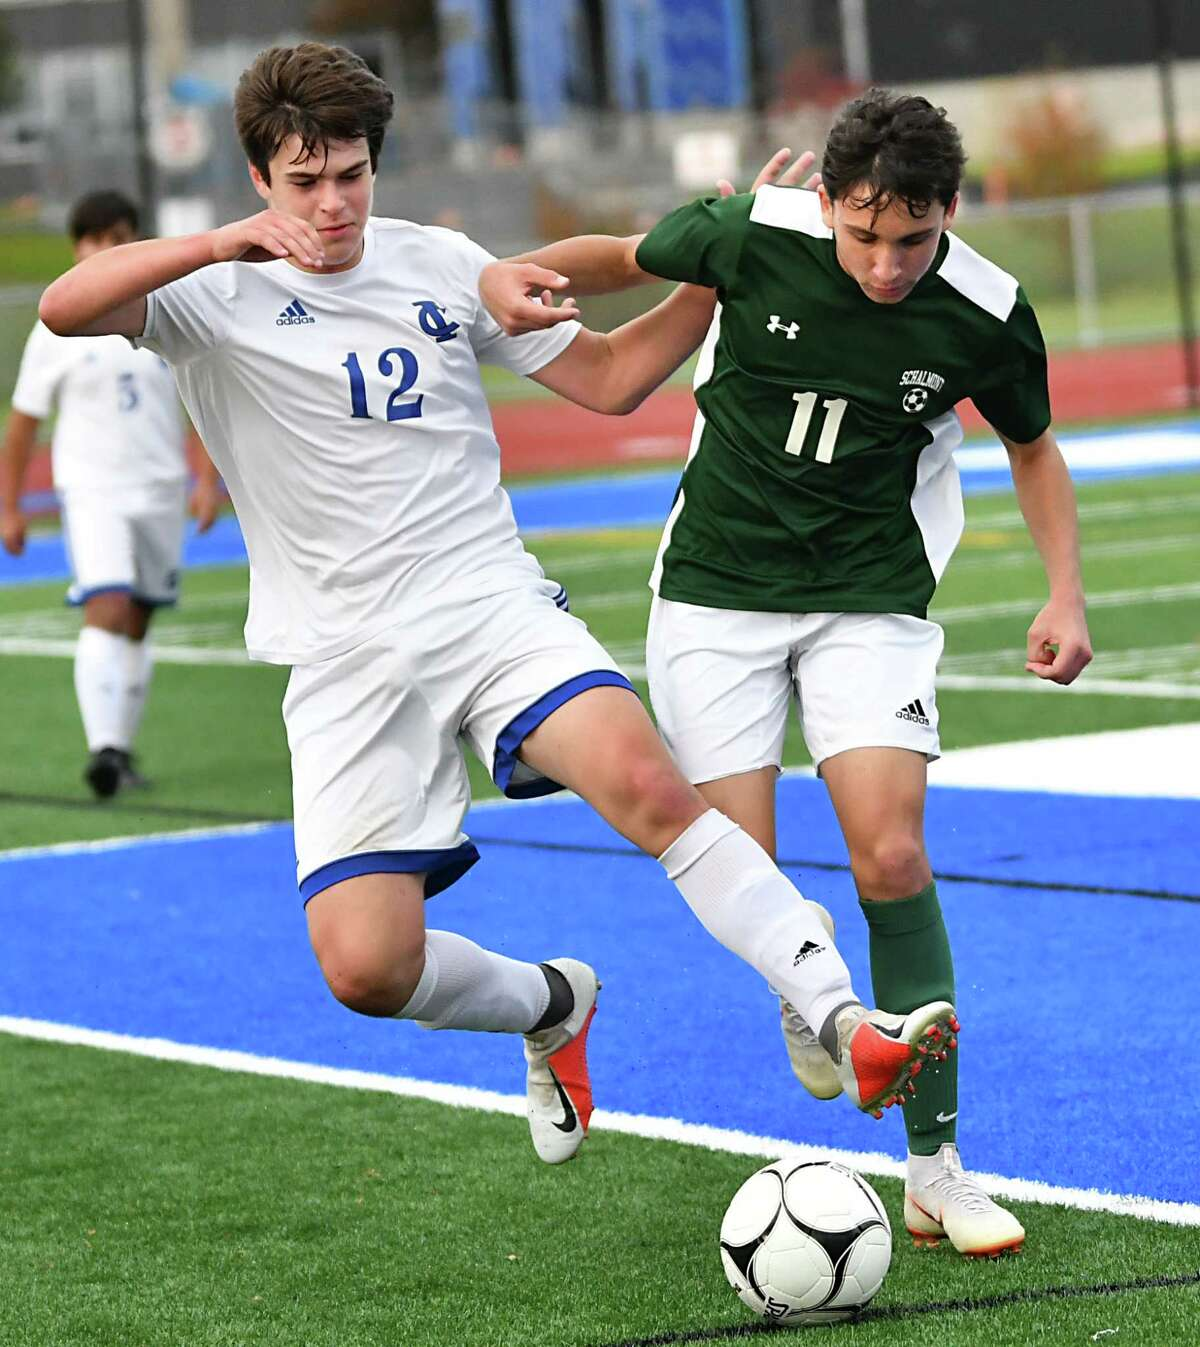 Ichabod Crane's Joe Desmonie, left, battles for the ball with Schalmont's Ryan Edwards during the Class B boys' soccer final on Monday, Oct. 29, 2018 in Troy, N.Y. (Lori Van Buren/Times Union)